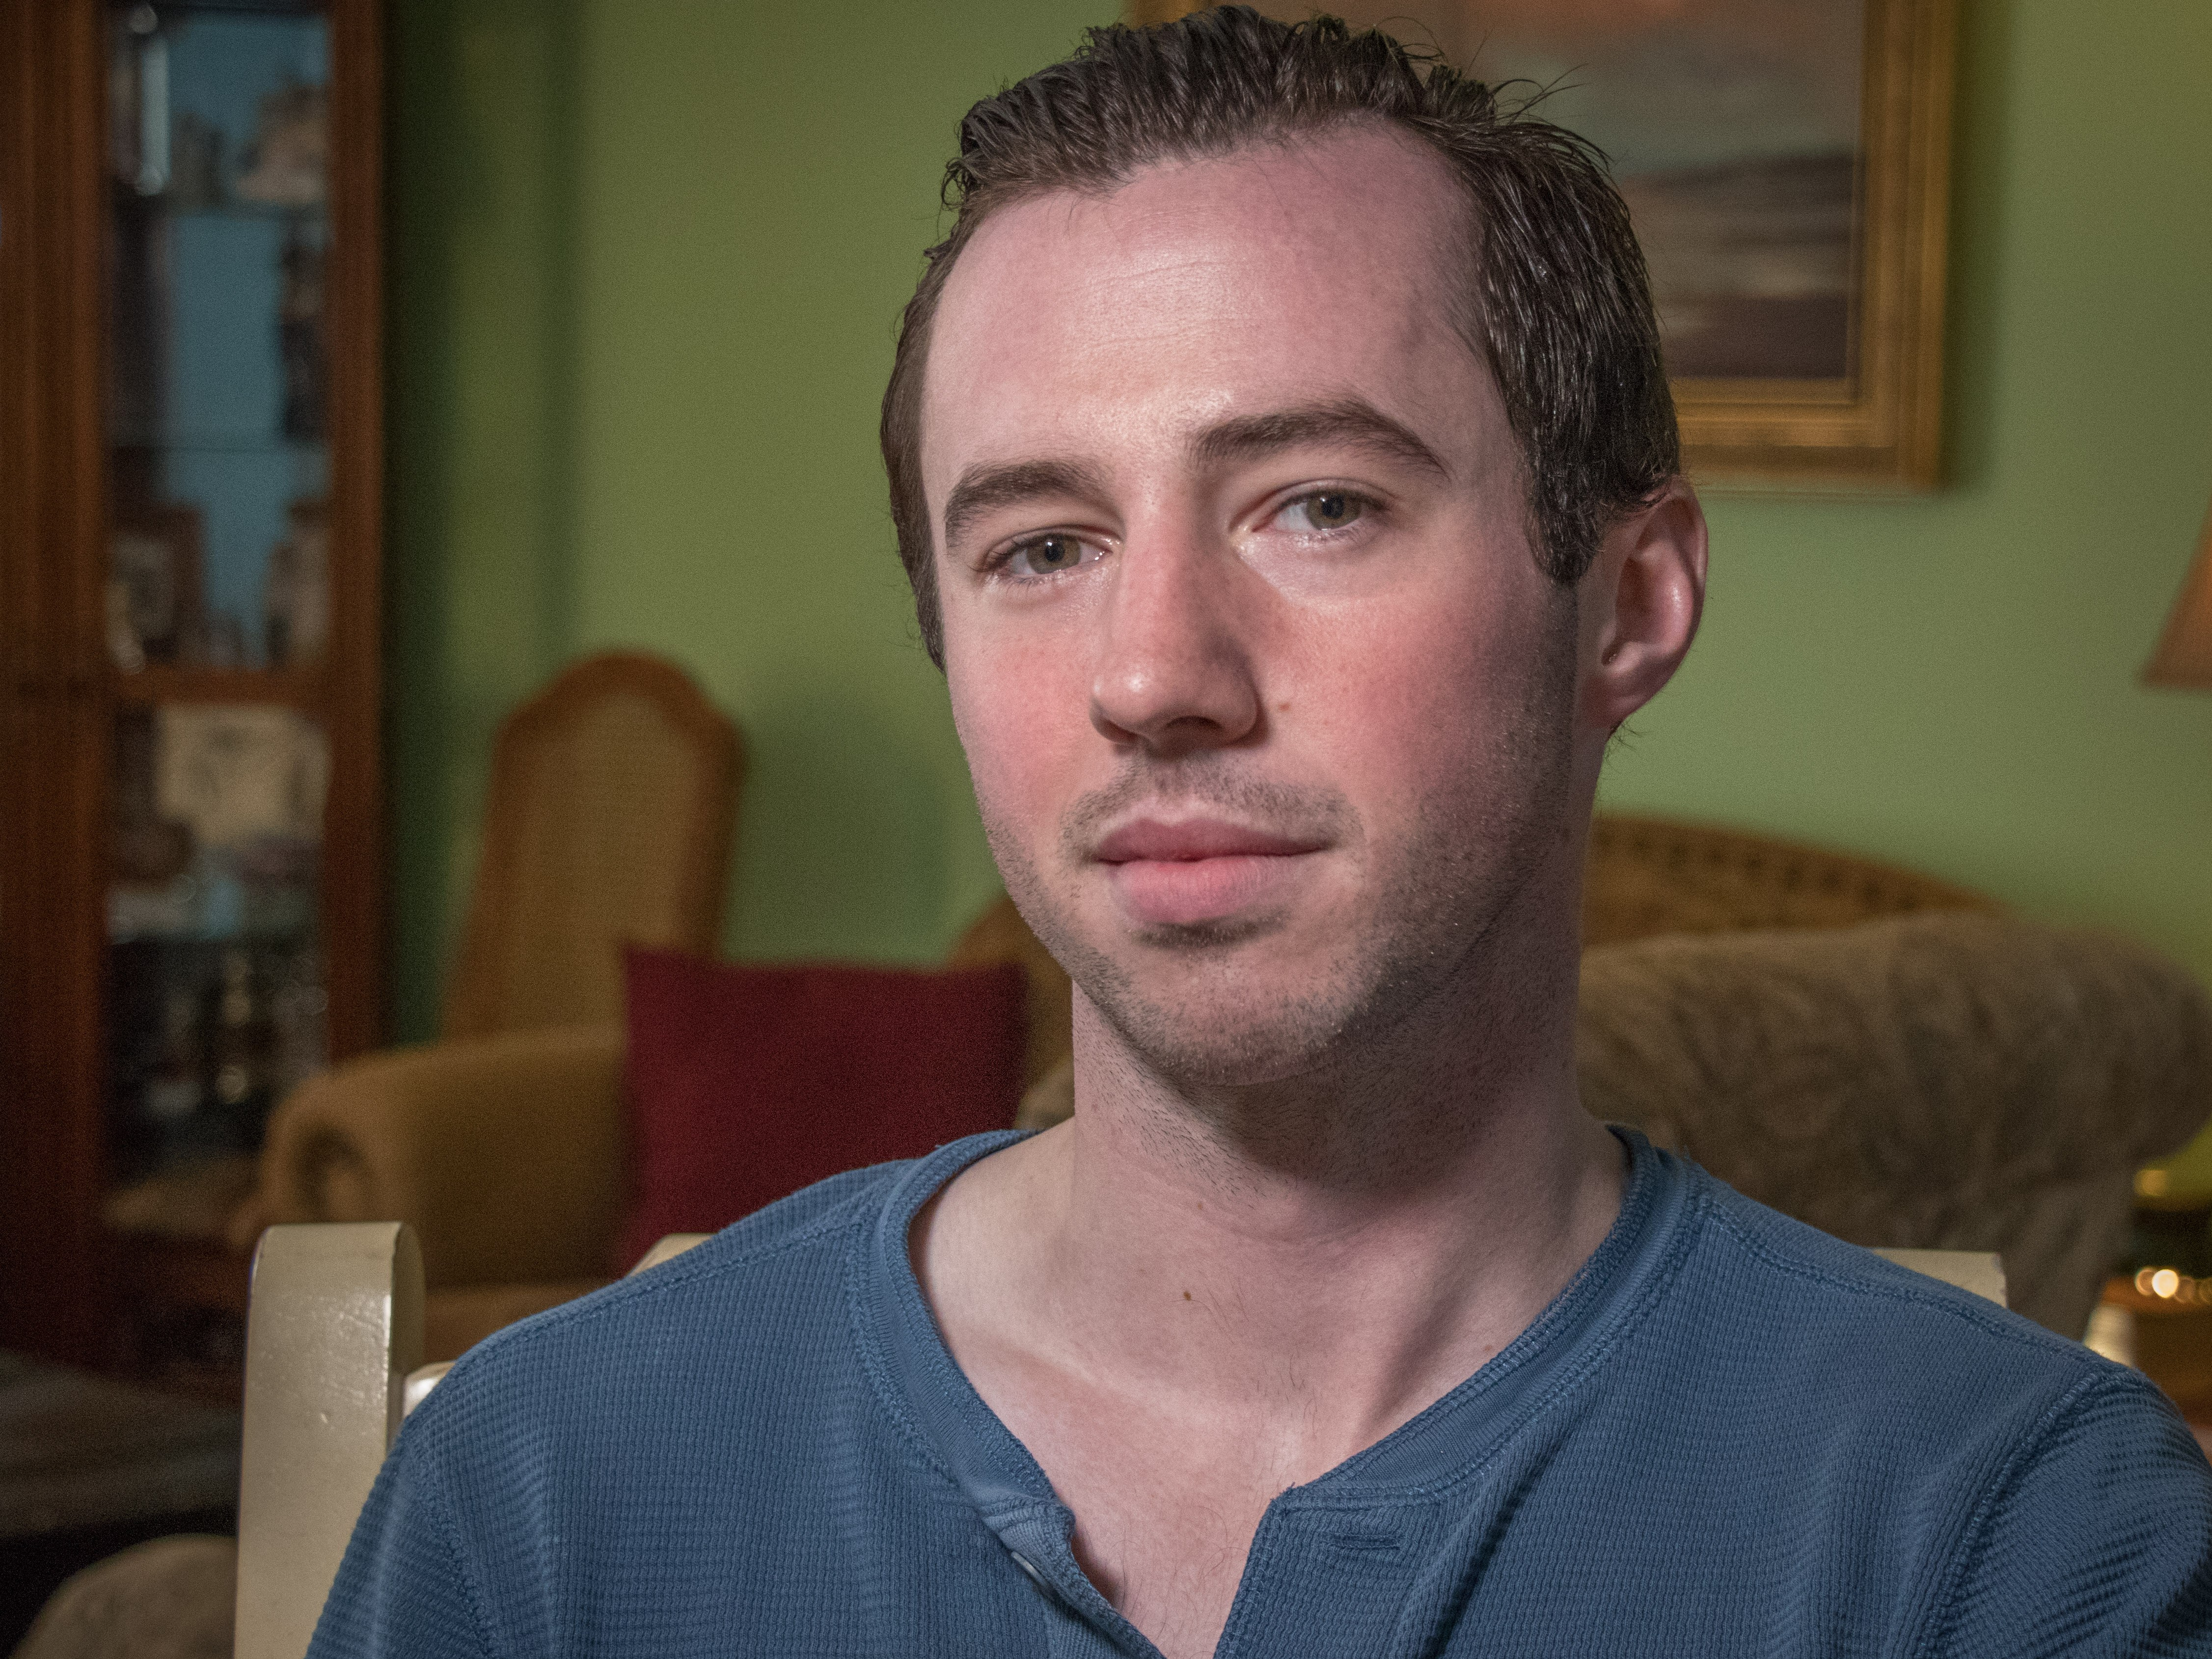 Jacob Wells at the home of his parents in Cole Harbour, N.S. (Steve Berry/CBC)